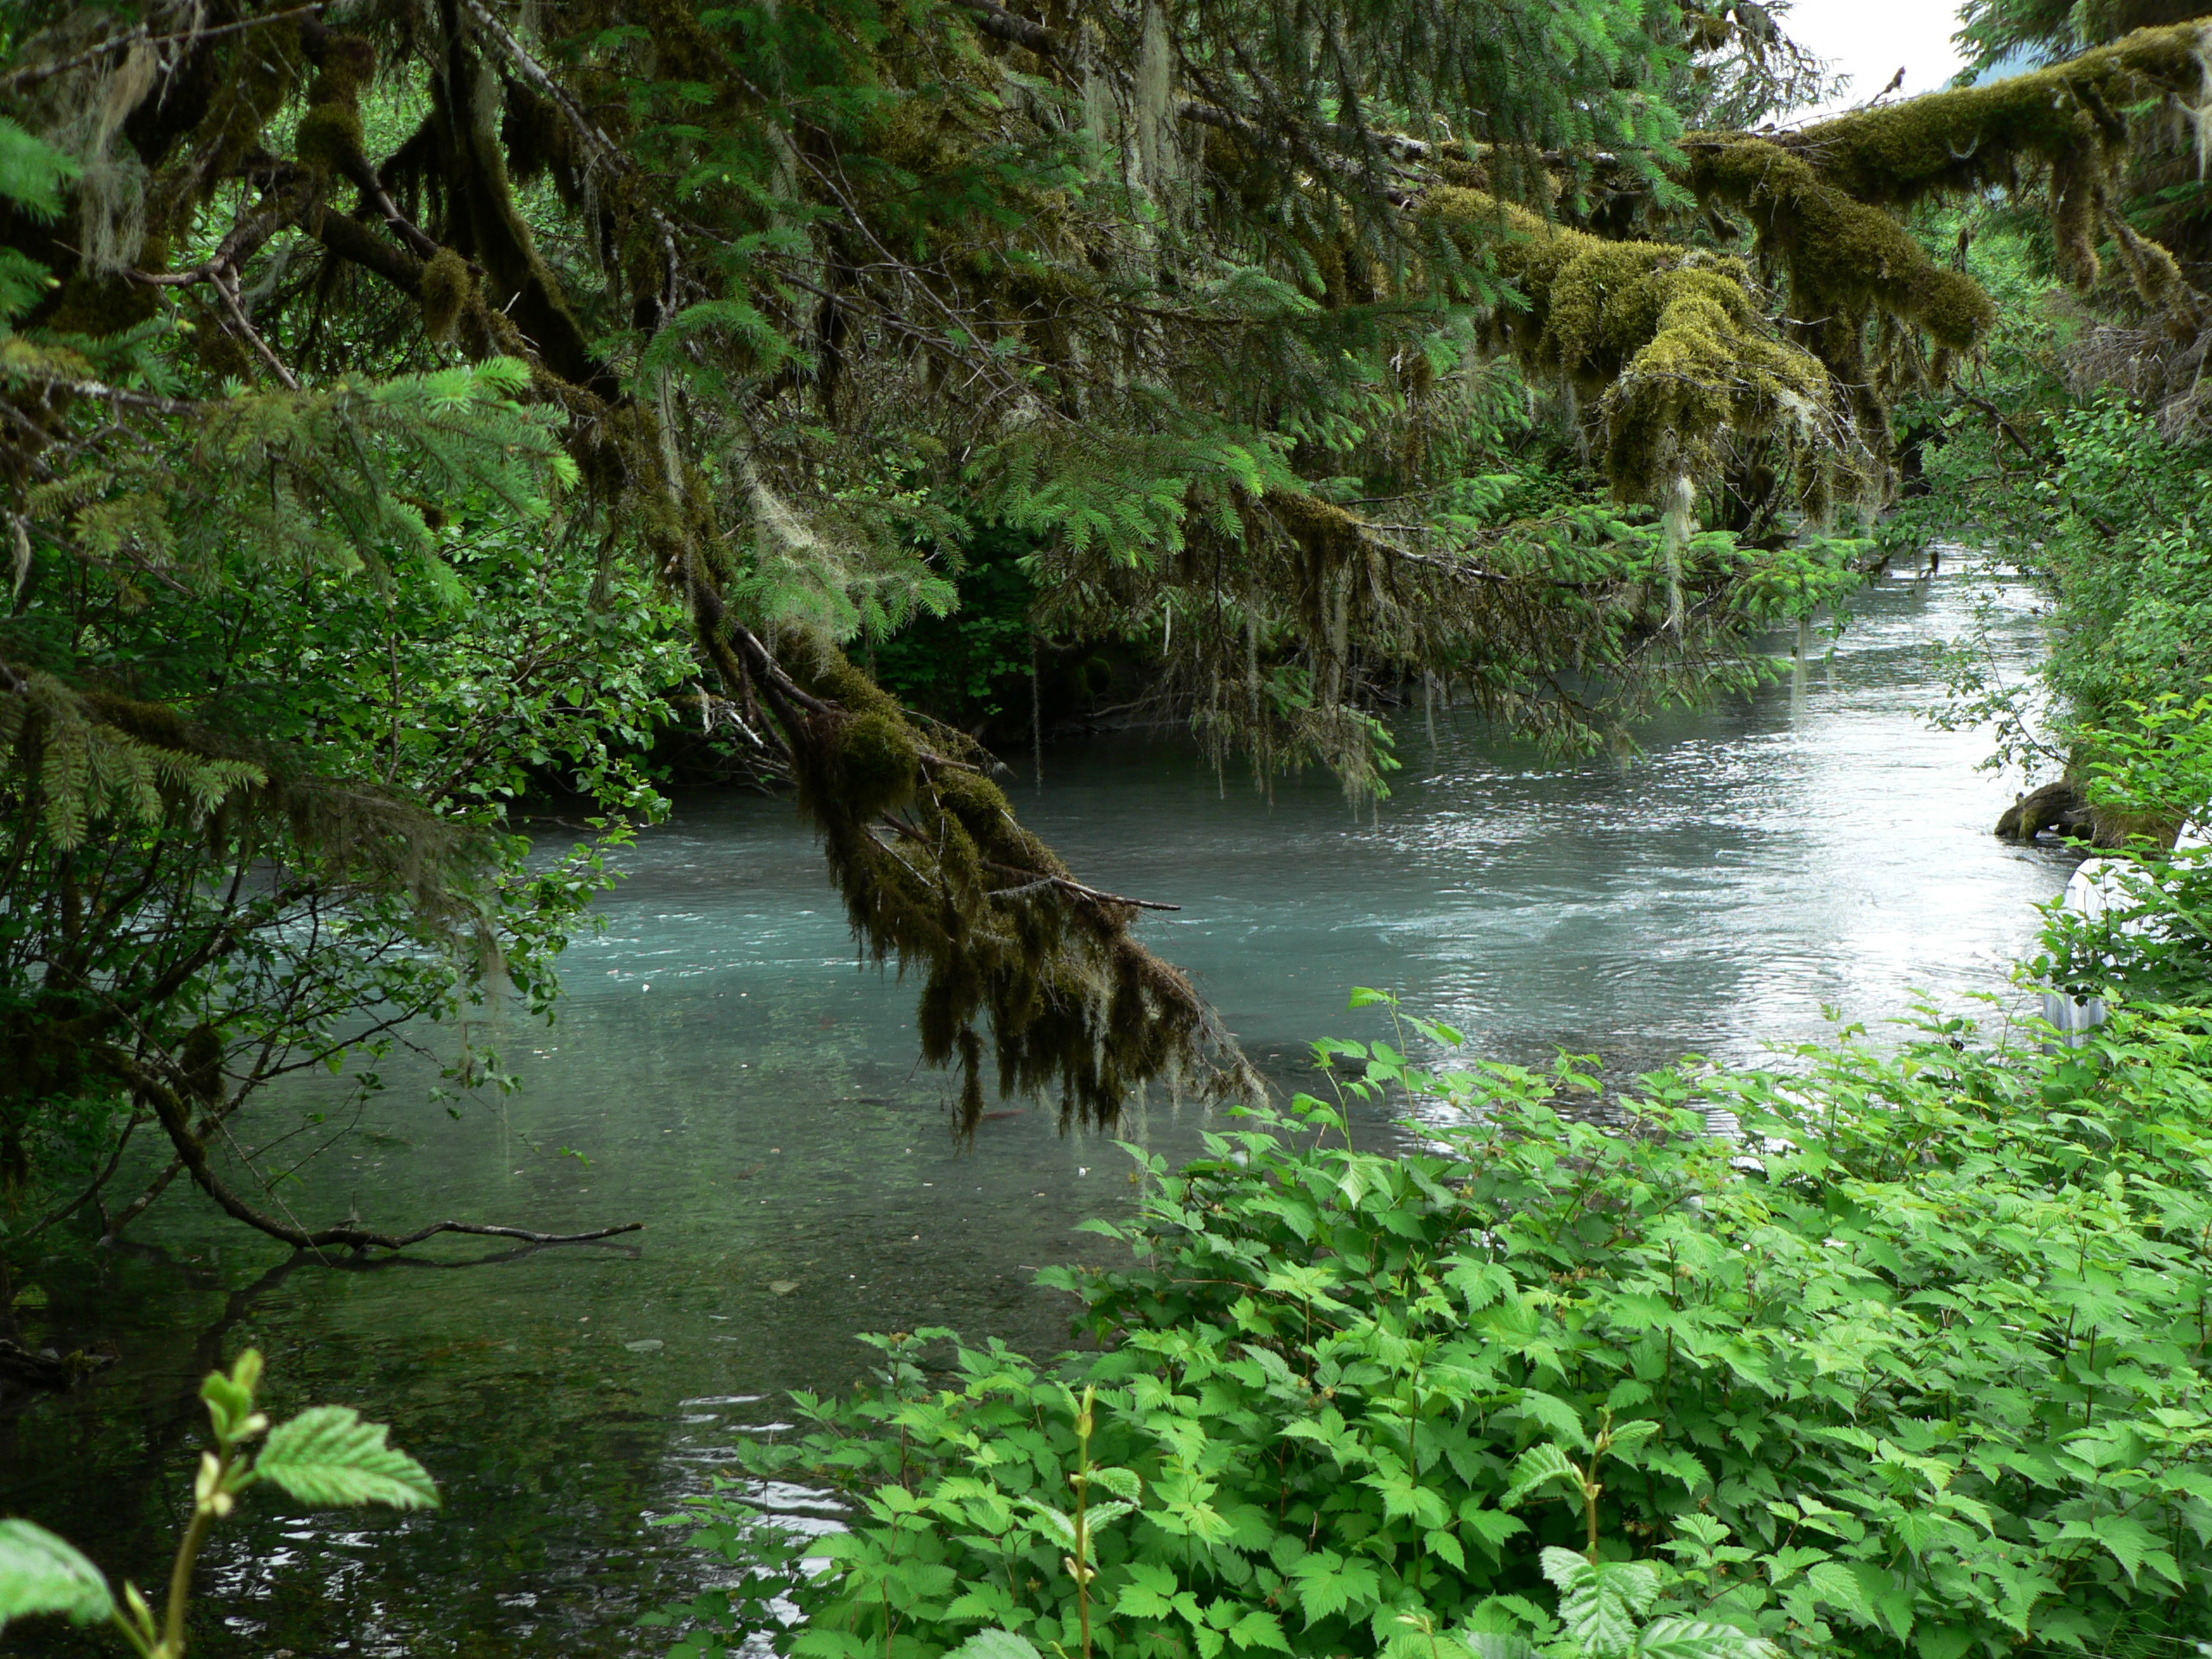 File:Cordova Power Creek Salmon Stream.jpg